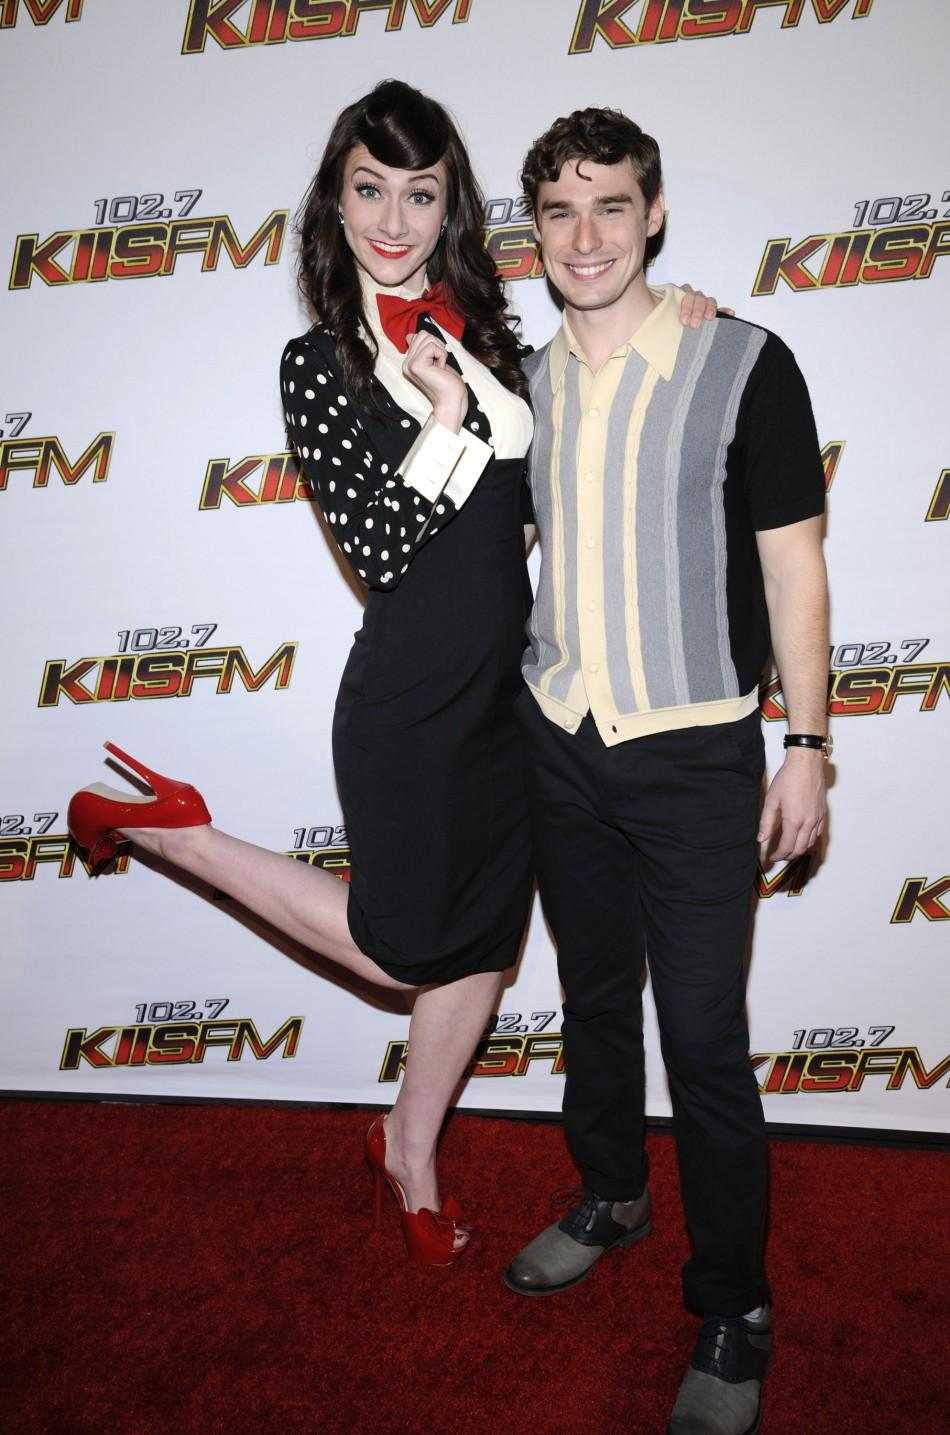 Amy Heidemann (L) and Nick Noonan of the duo Karmin attend the 102.7 KIIS FM's Jingle Ball 2011 in Los Angeles